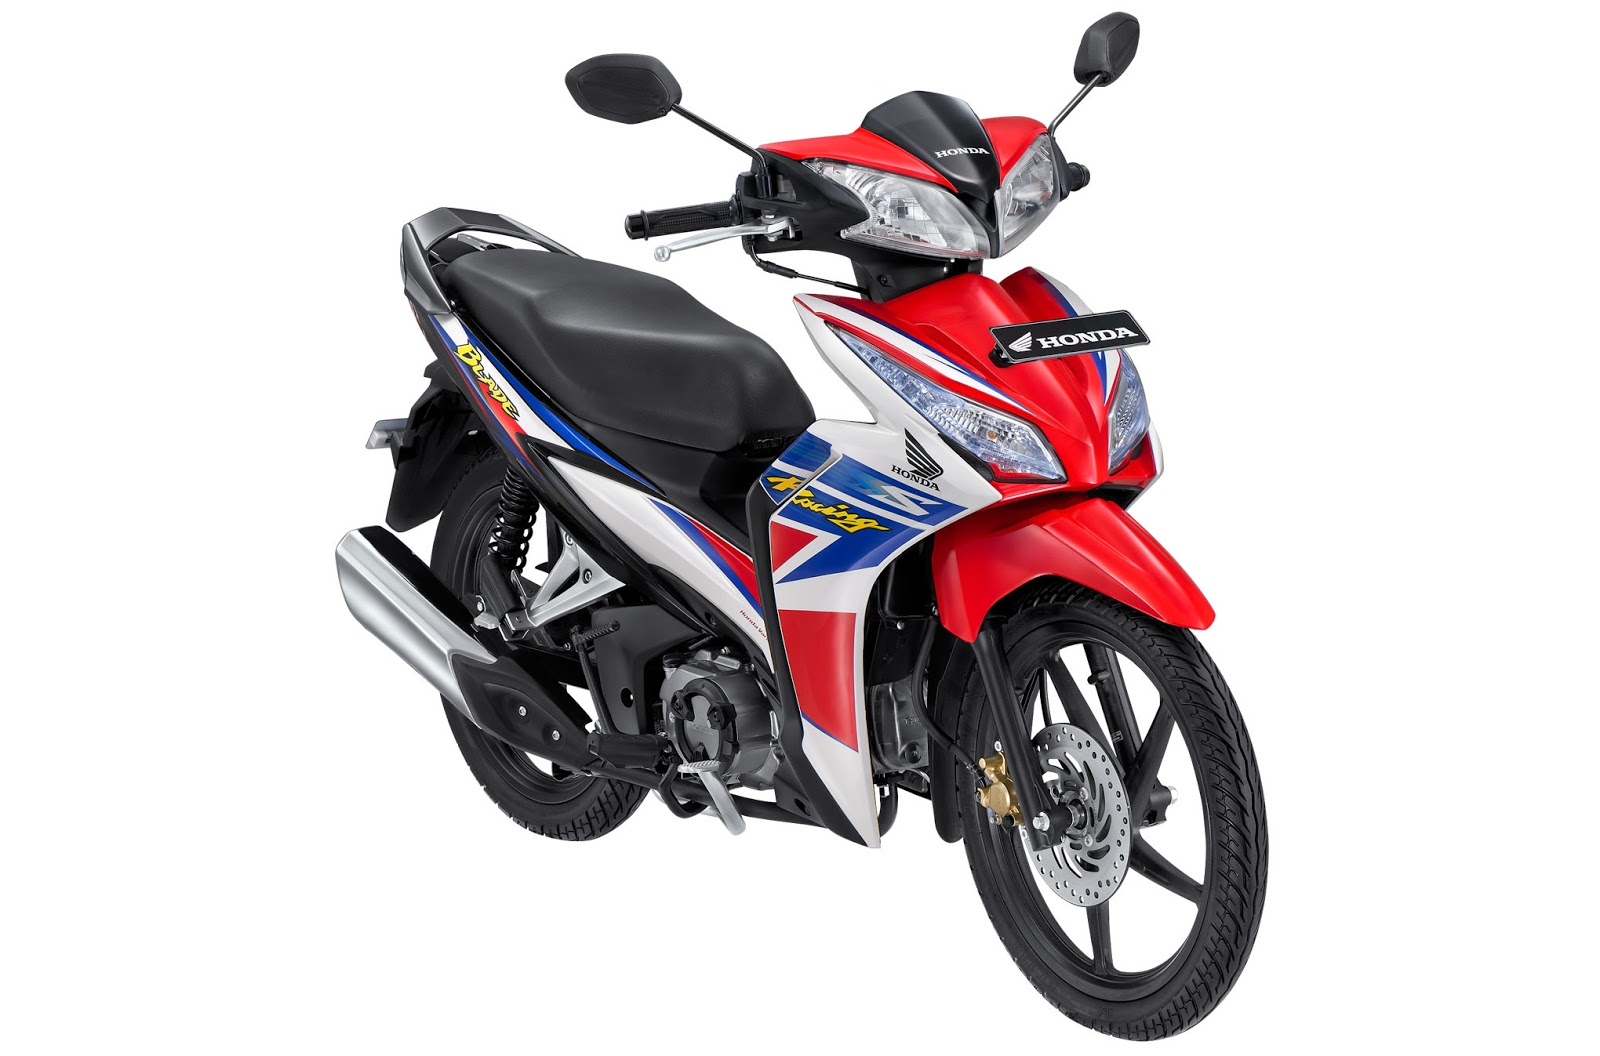 Dealer Honda Taruna Motor Pati 2013 All New Cb 150r Streetfire Macho Black Kudus Blade 110 S